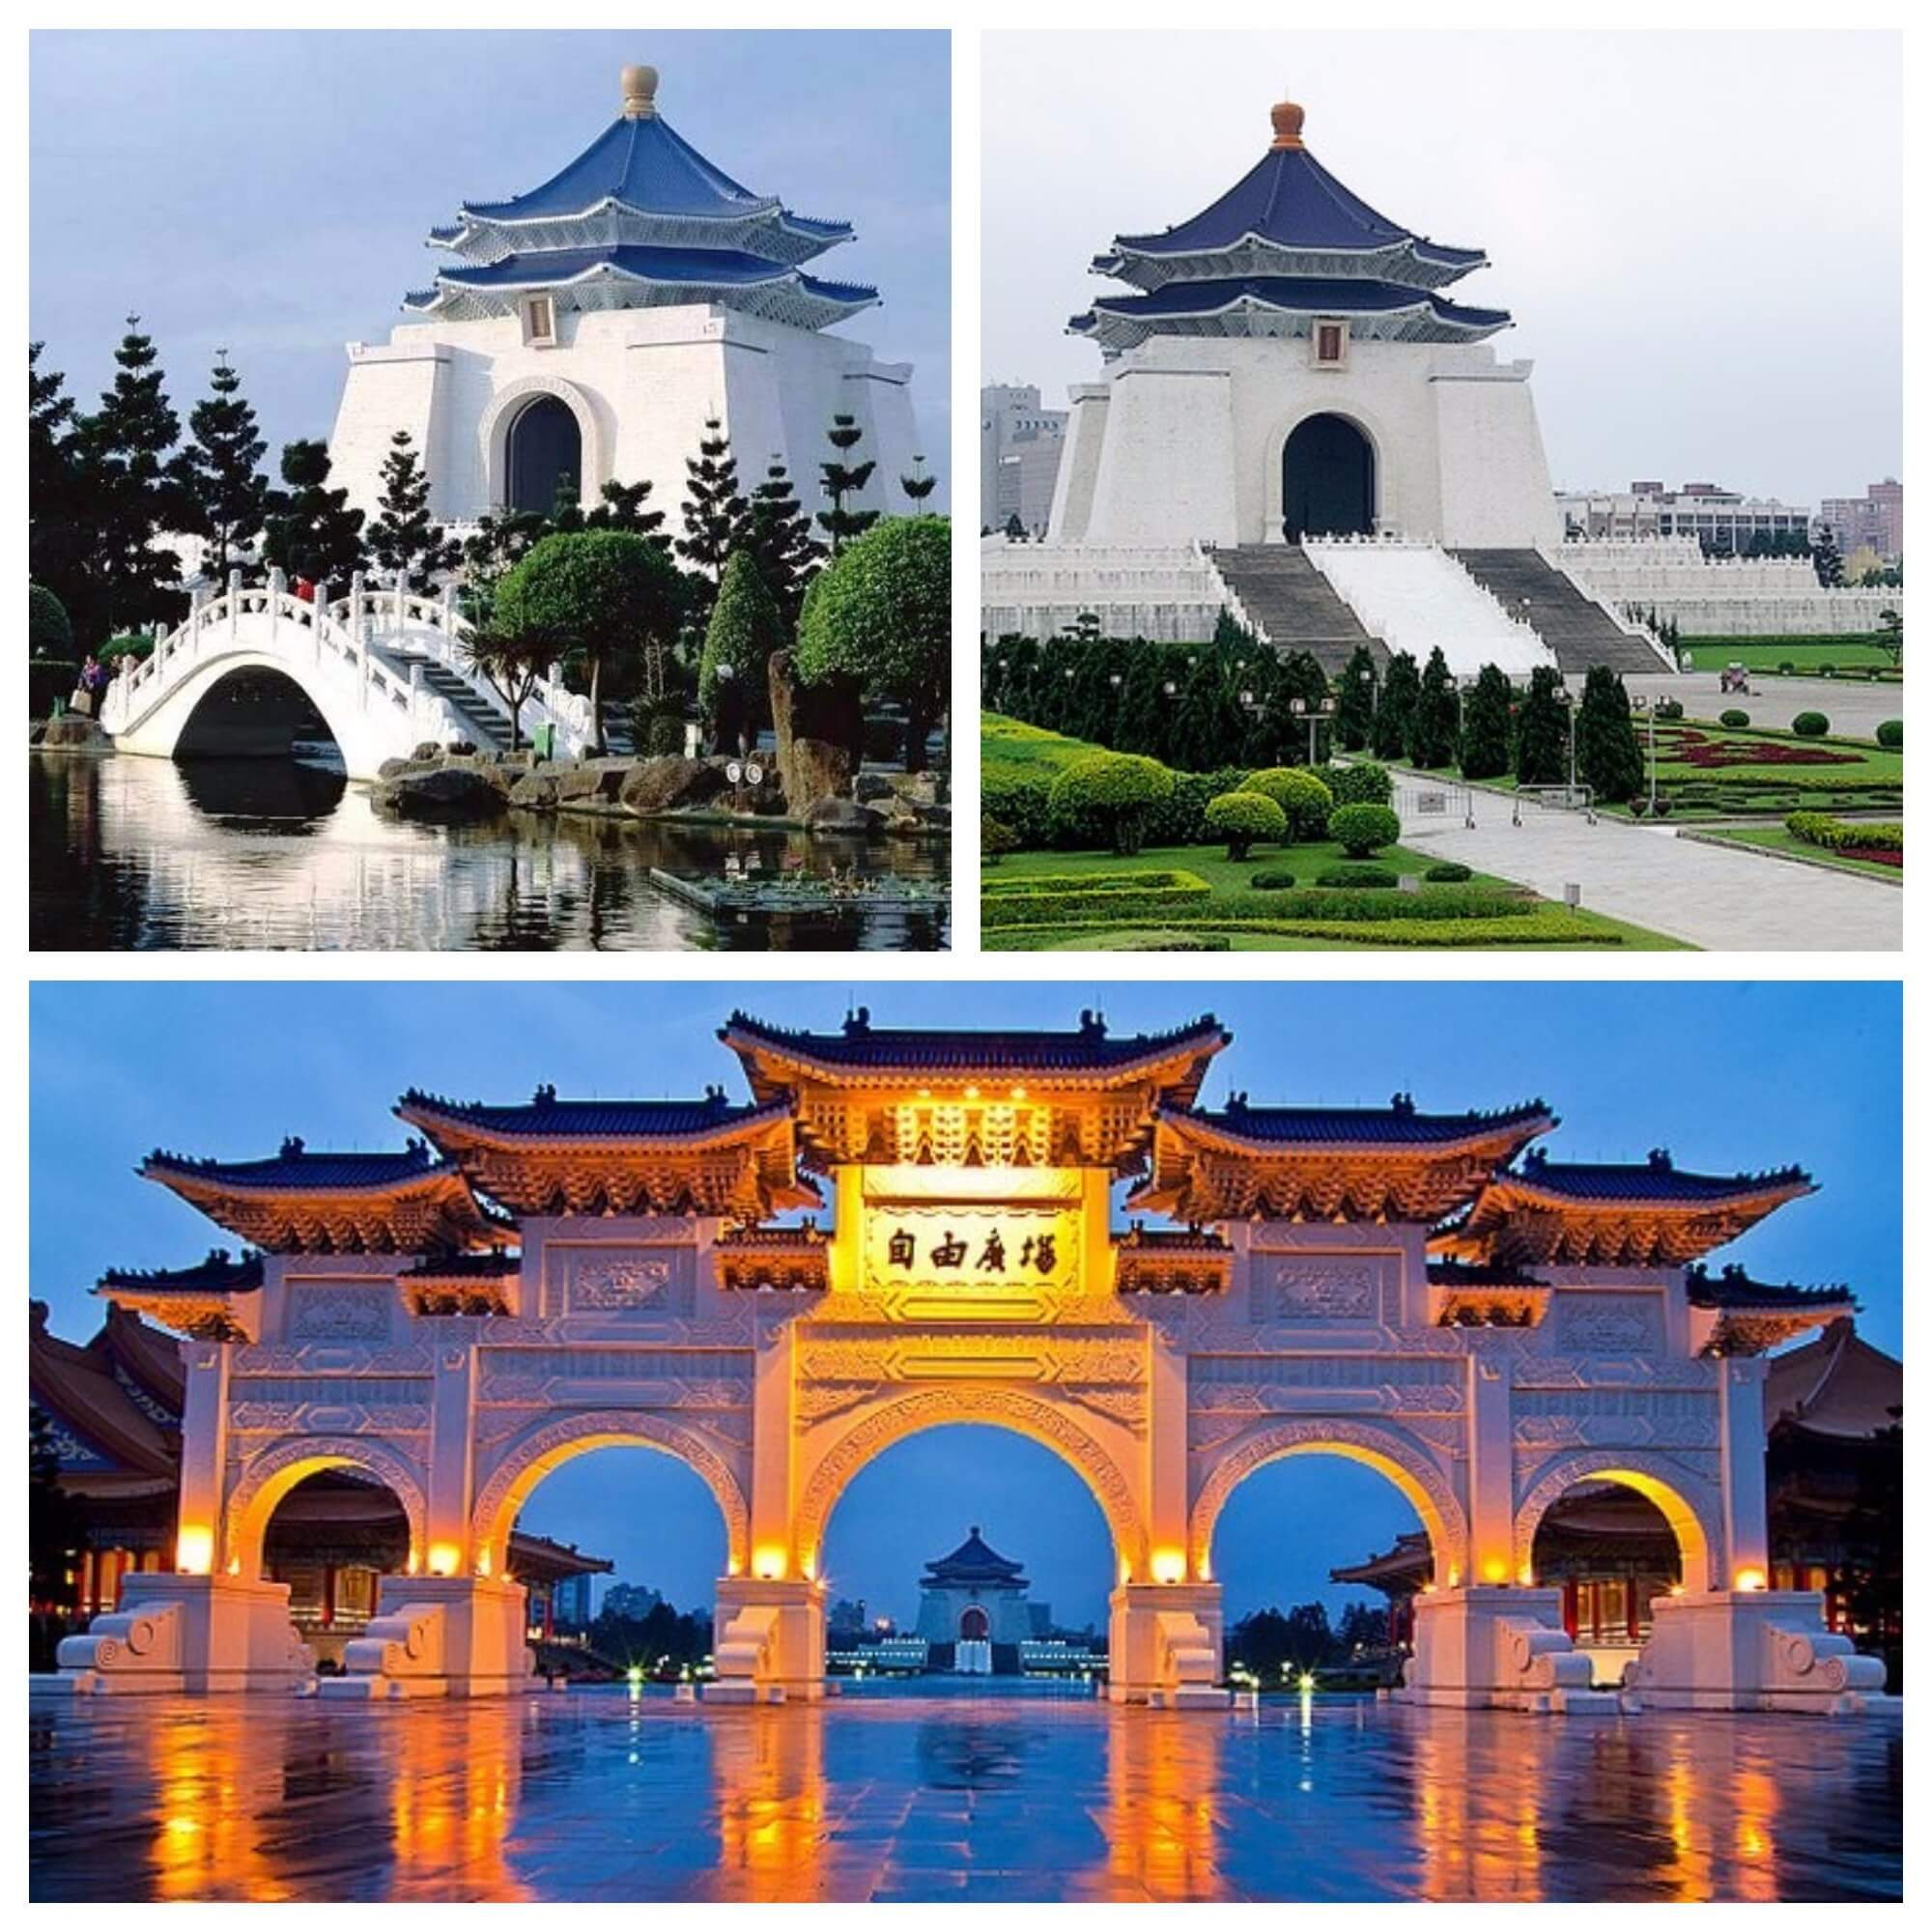 Taipei Travel Guide for First Timers- Chiang Kai-shek Memorial Hall